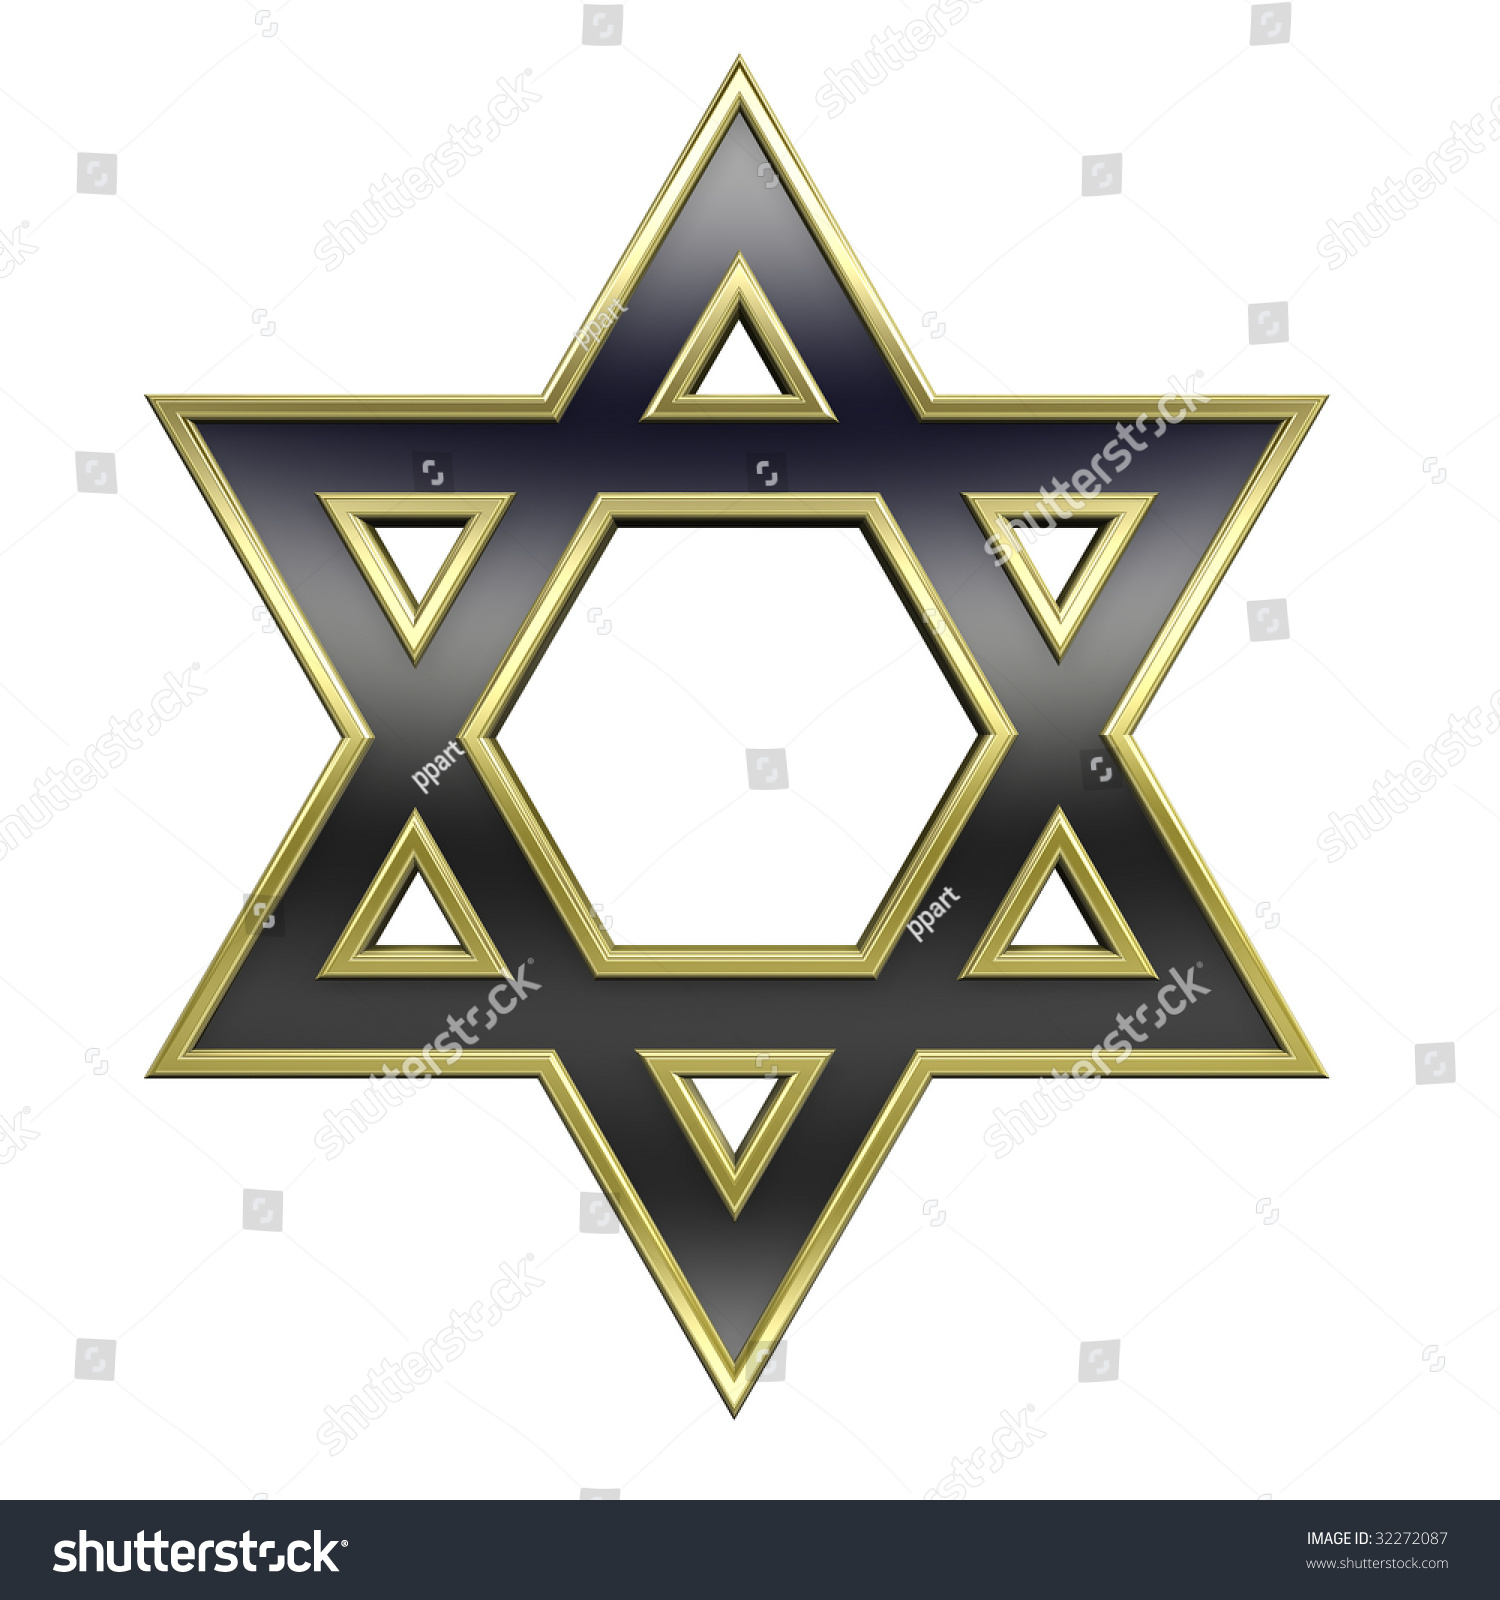 Black gold frame judaism religious symbol stock illustration black with gold frame judaism religious symbol star of david isolated on white computer biocorpaavc